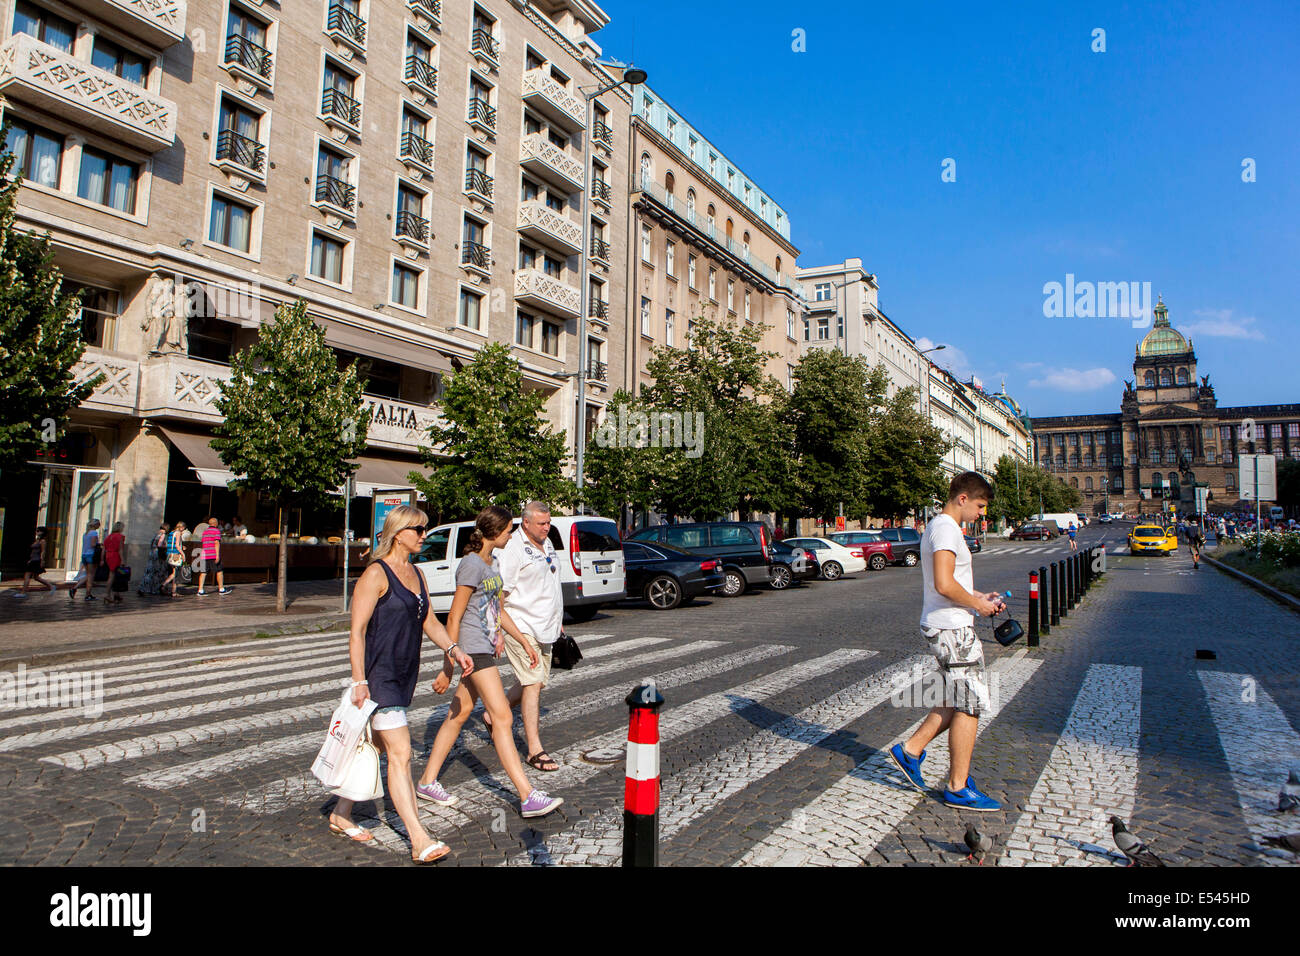 Tourists on crosswalk, Hotel Jalta on Wenceslas Square Prague Czech - Stock Image